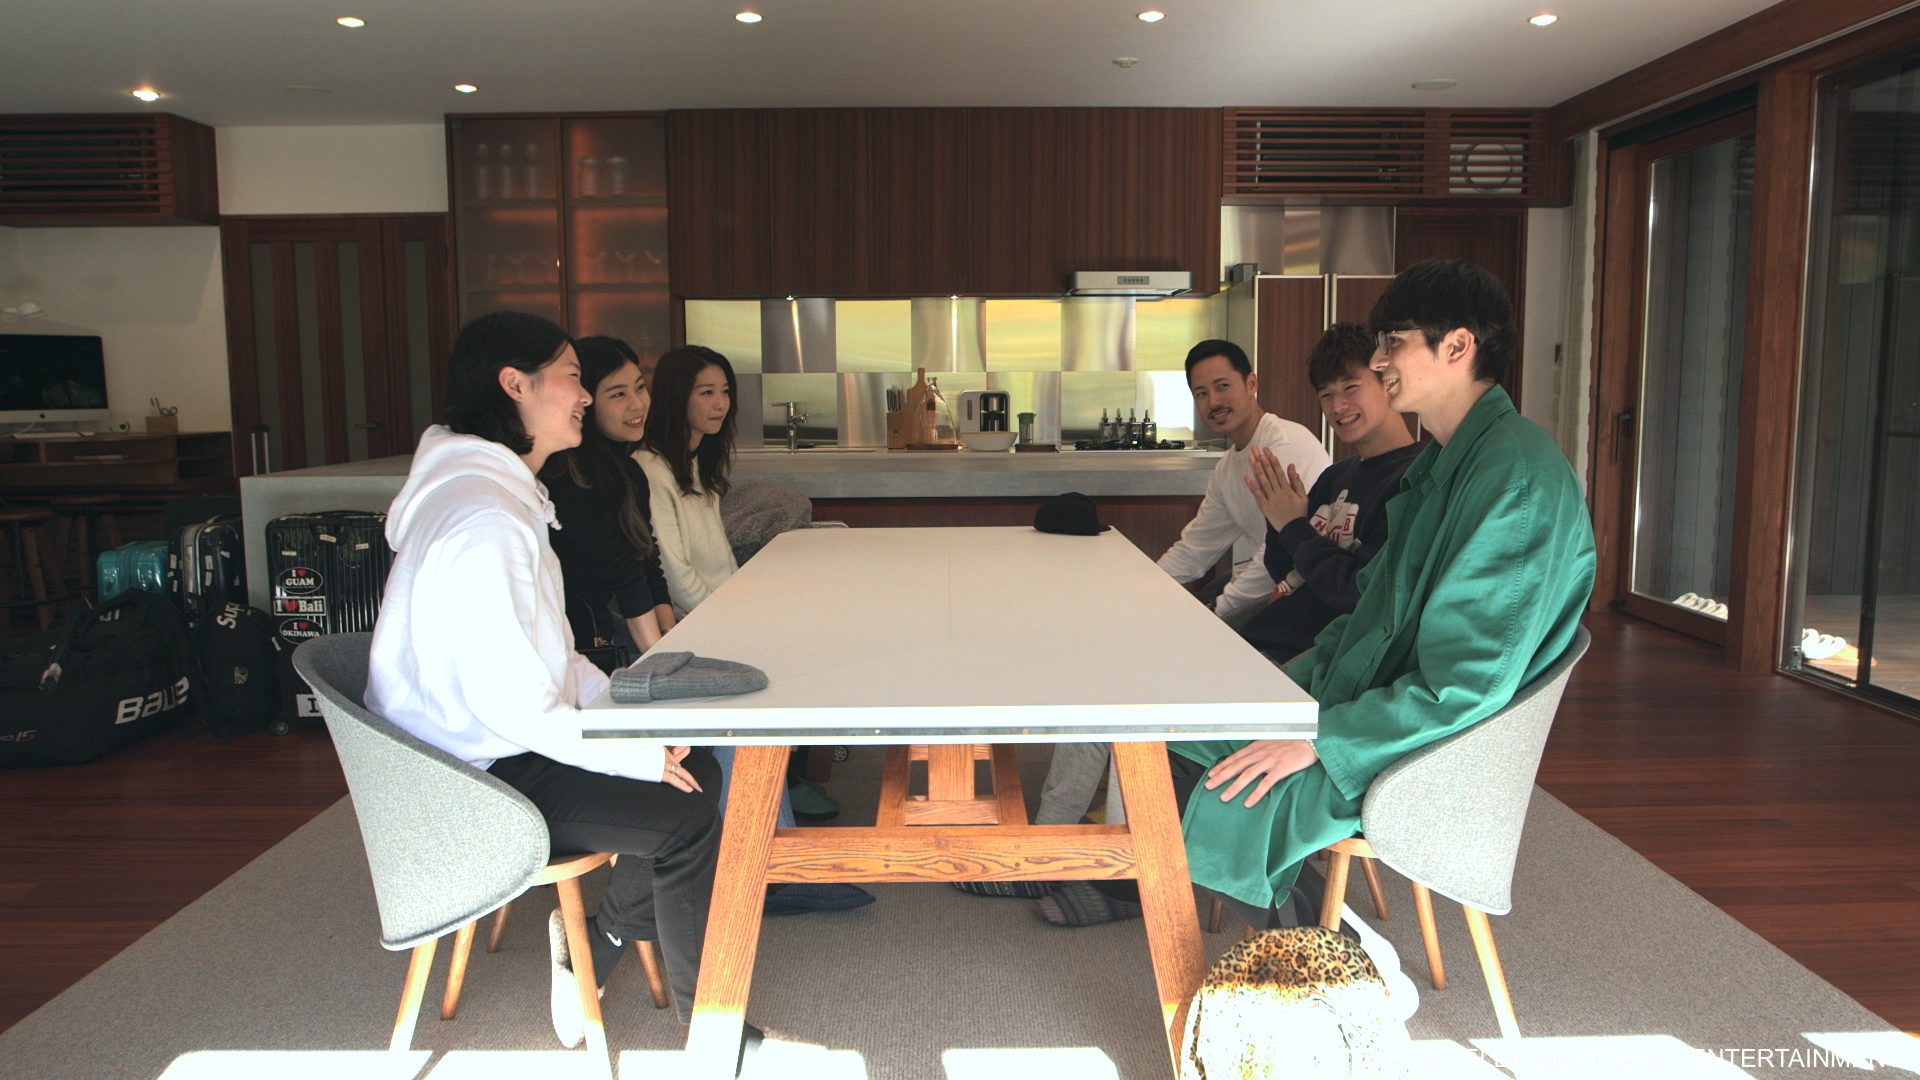 Tsubasa Sato (front left) and Shion Okamoto with the cast of Terrace House: Opening New Doors